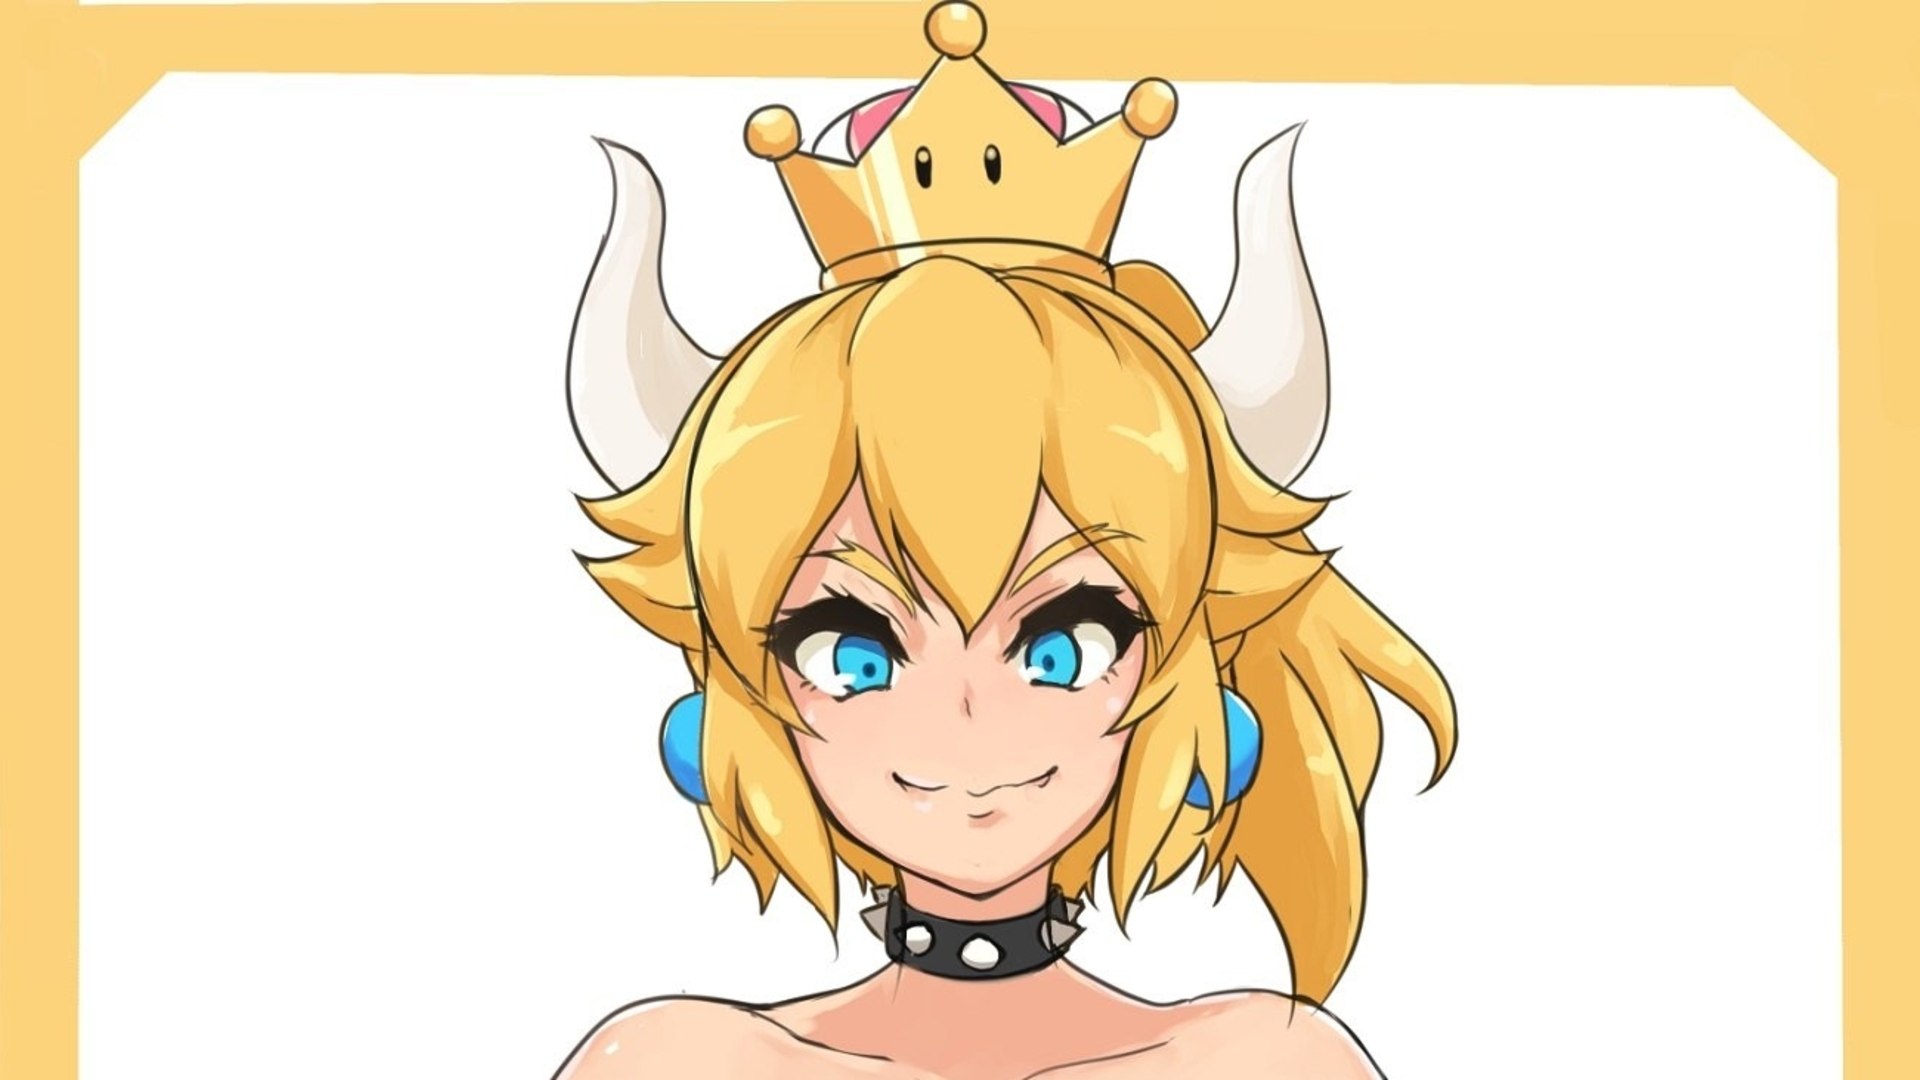 Bowsette Regret - This week the crew talks about what we think the next game from the developer Bungie will be. We discuss why some of the terms of service to Pokemon Go don't make sense. Then we have mixed emotions on Sony's decision to finally allow cross play. Also Bowsette.... enough said. All this and more on the GameZilla Podcast 227.Bungie 00:23Pokemon GO 00:34Bowsette 00:53PSN cross play 01:08Must or Bust 01:22Emails 01:38